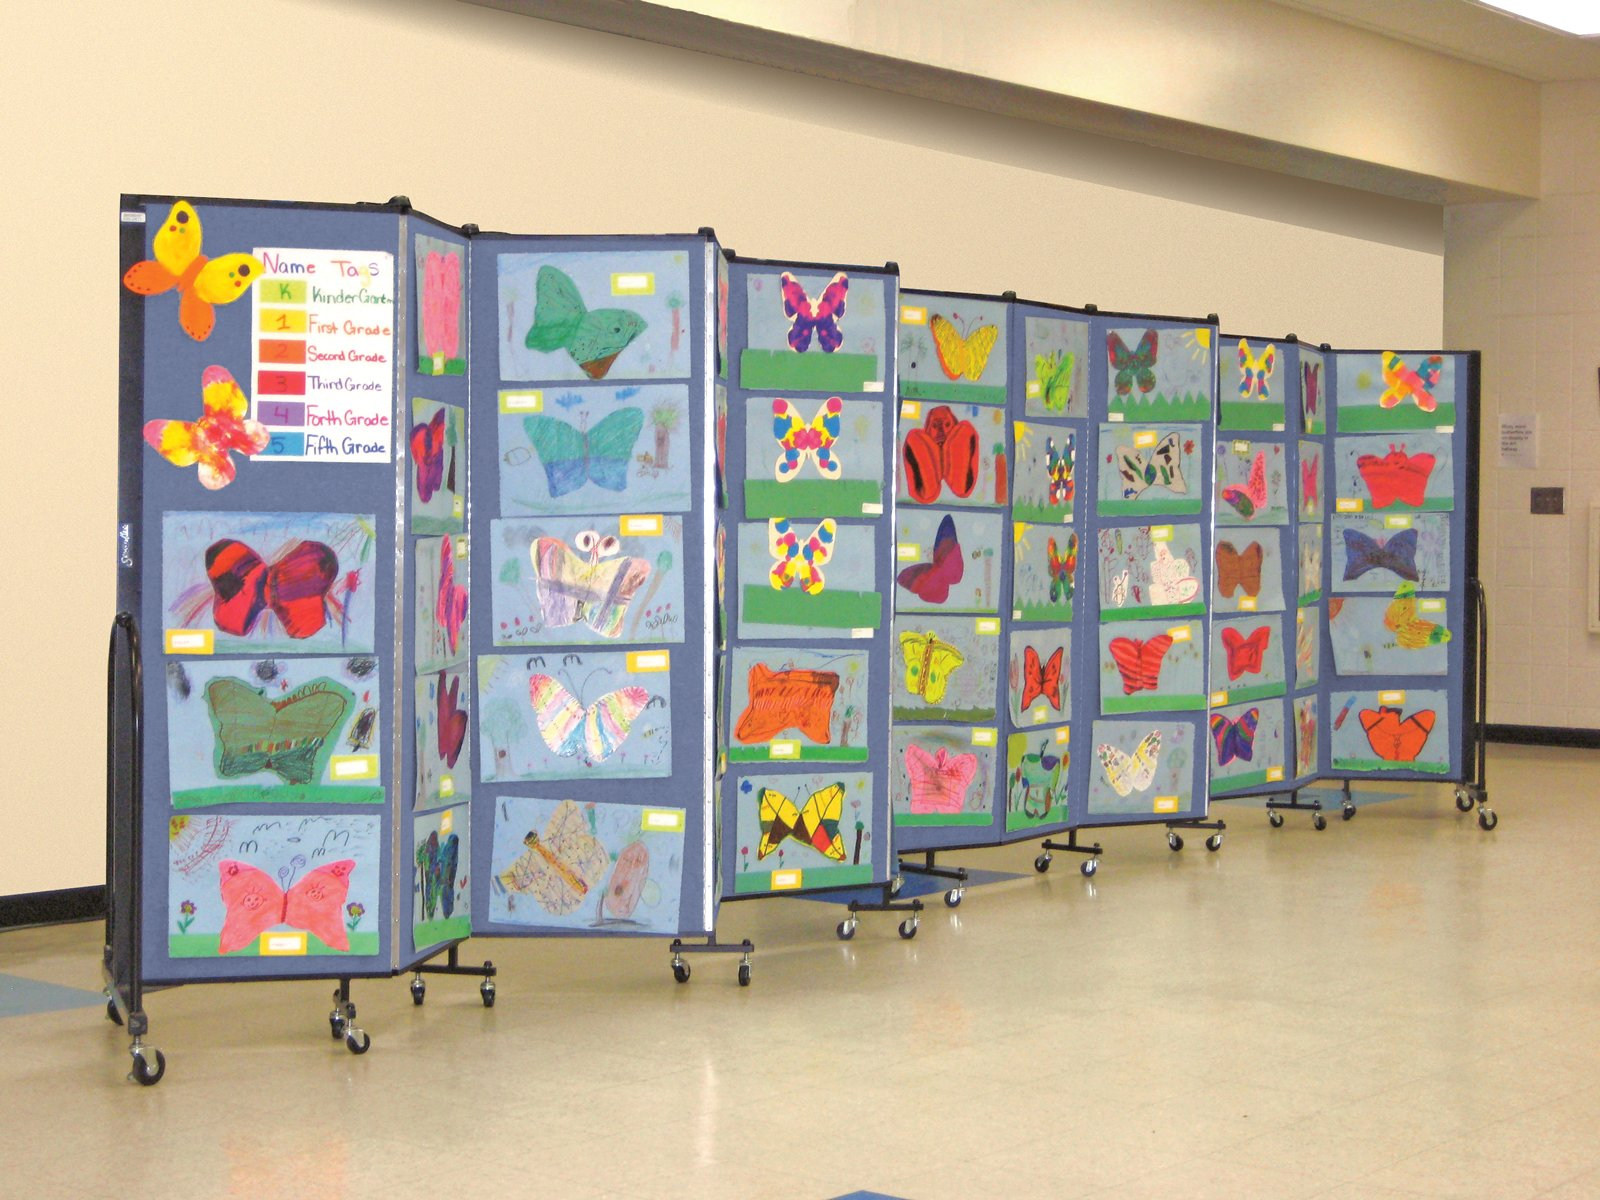 Artwork displayed on a blue portable room dividers in a school hallway.